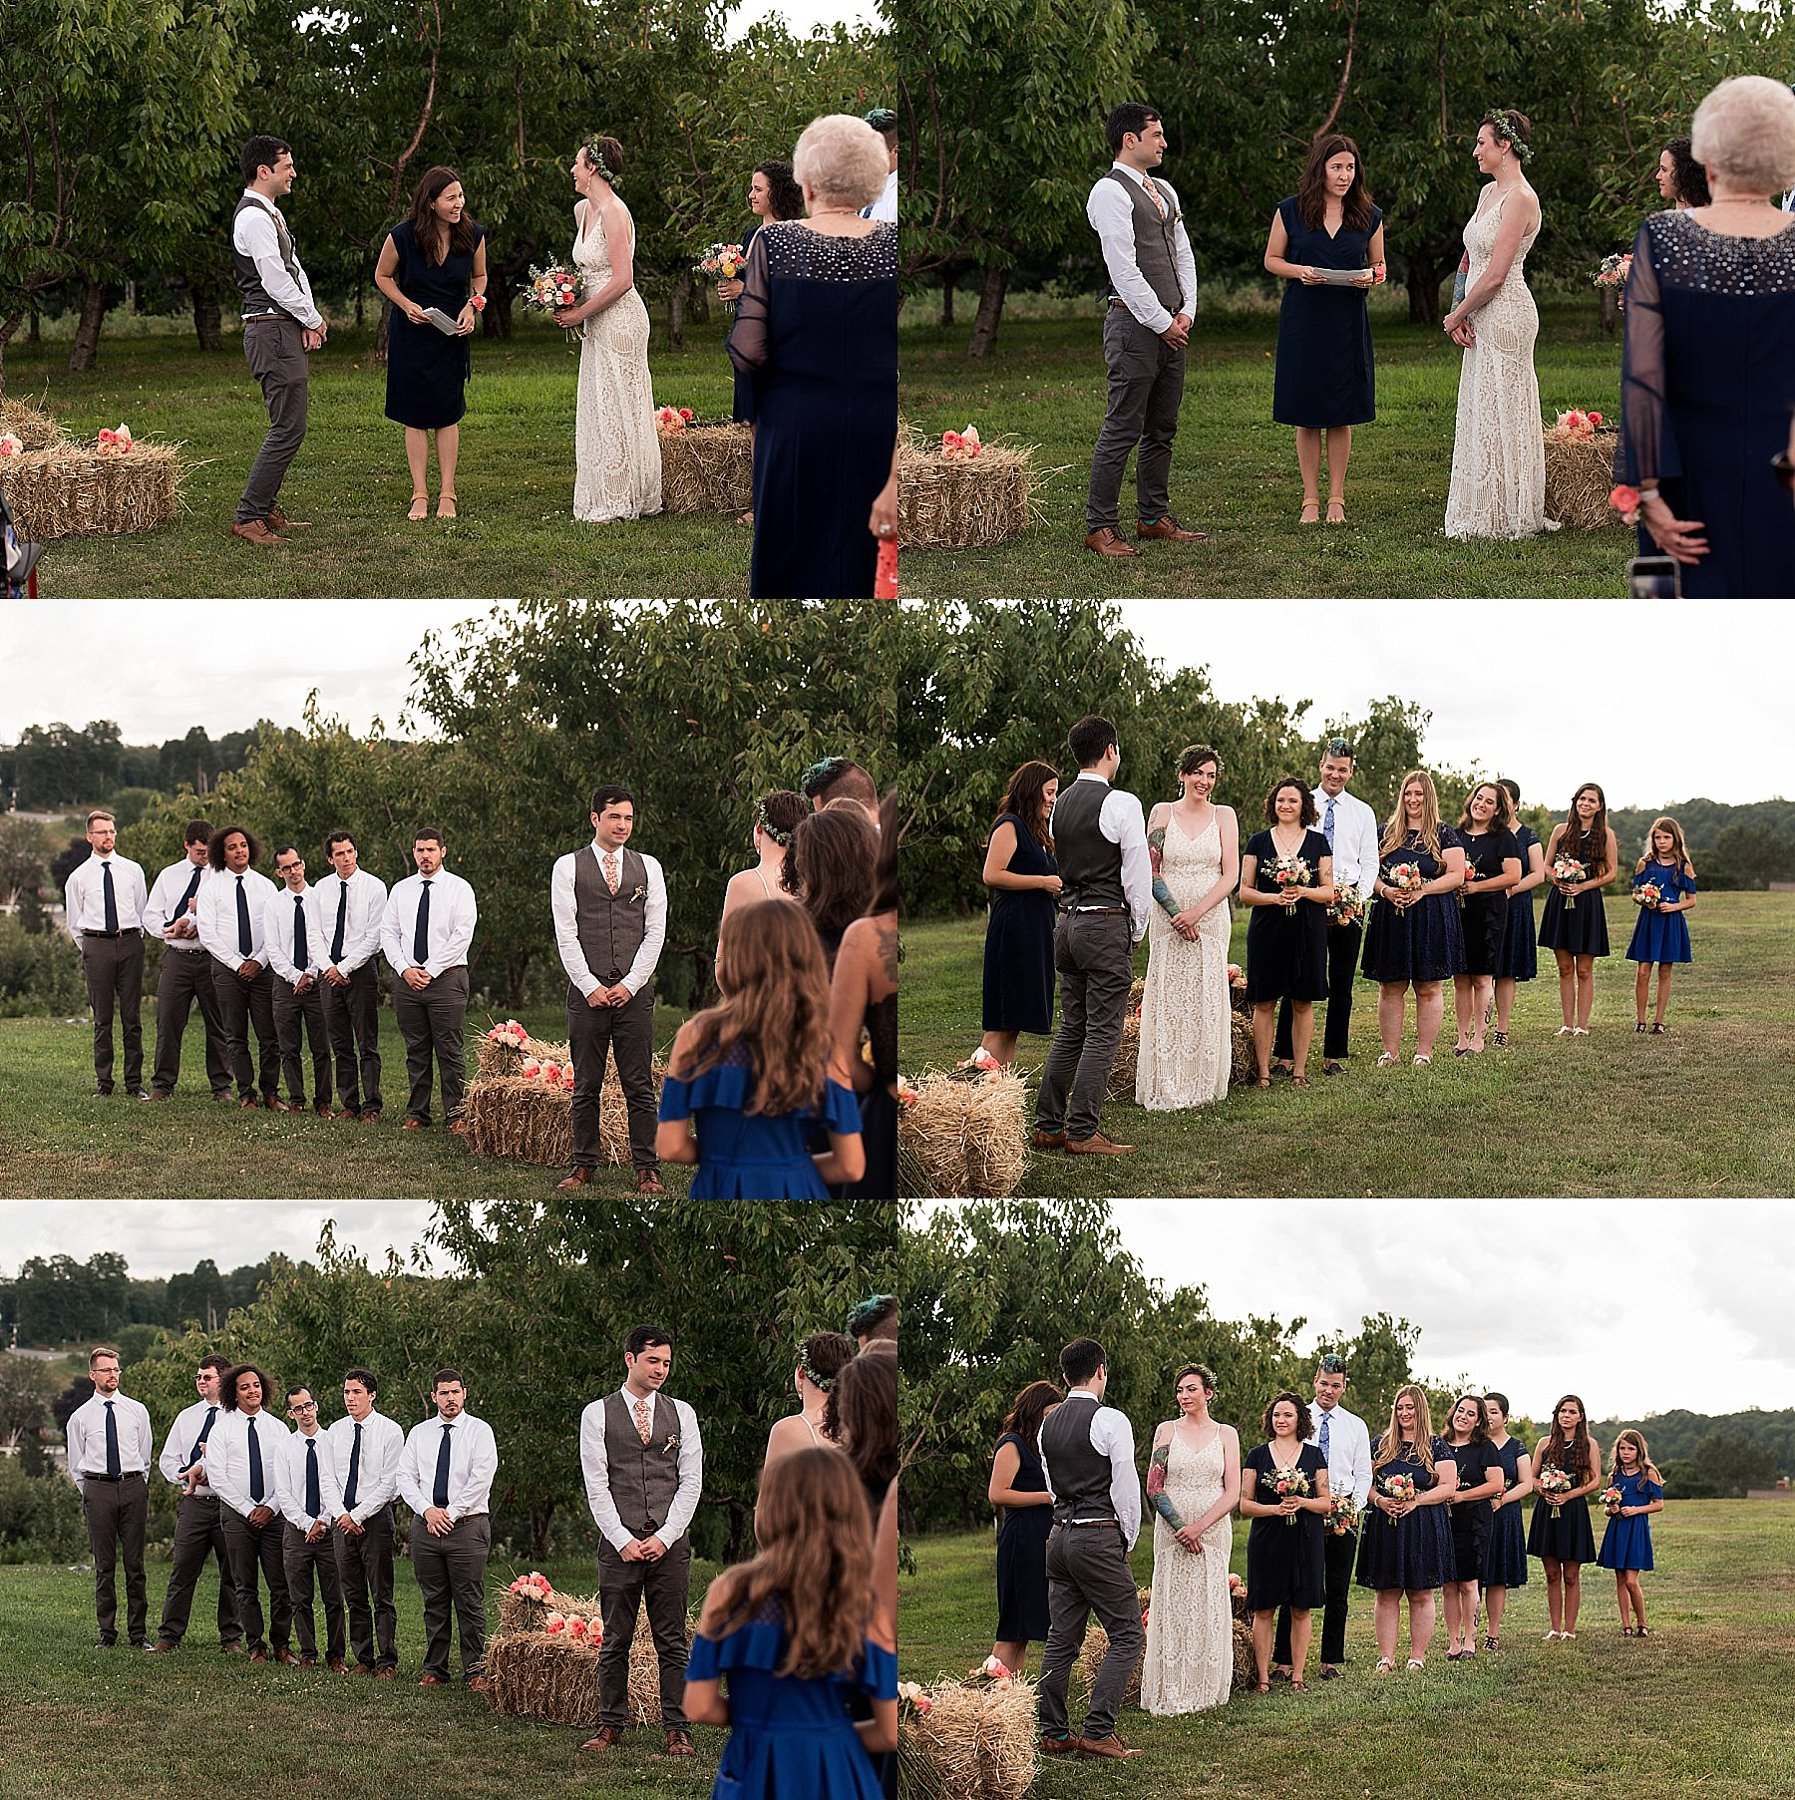 outdoor wedding ceremony at March Farms in Connecticut near the peach trees